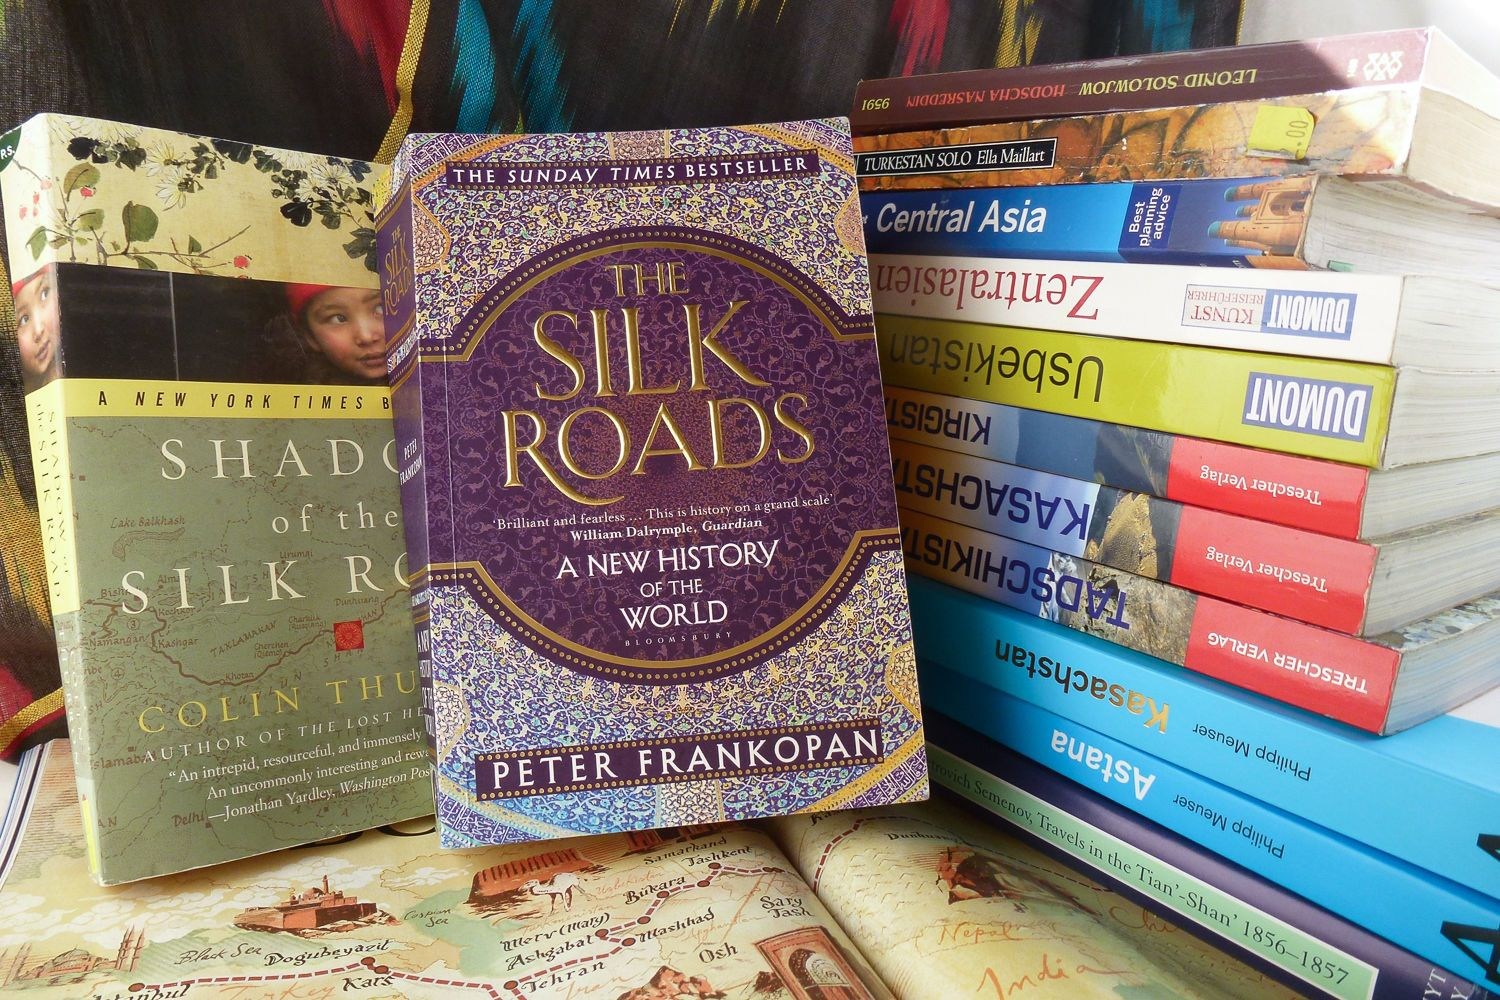 Silk Road travel books